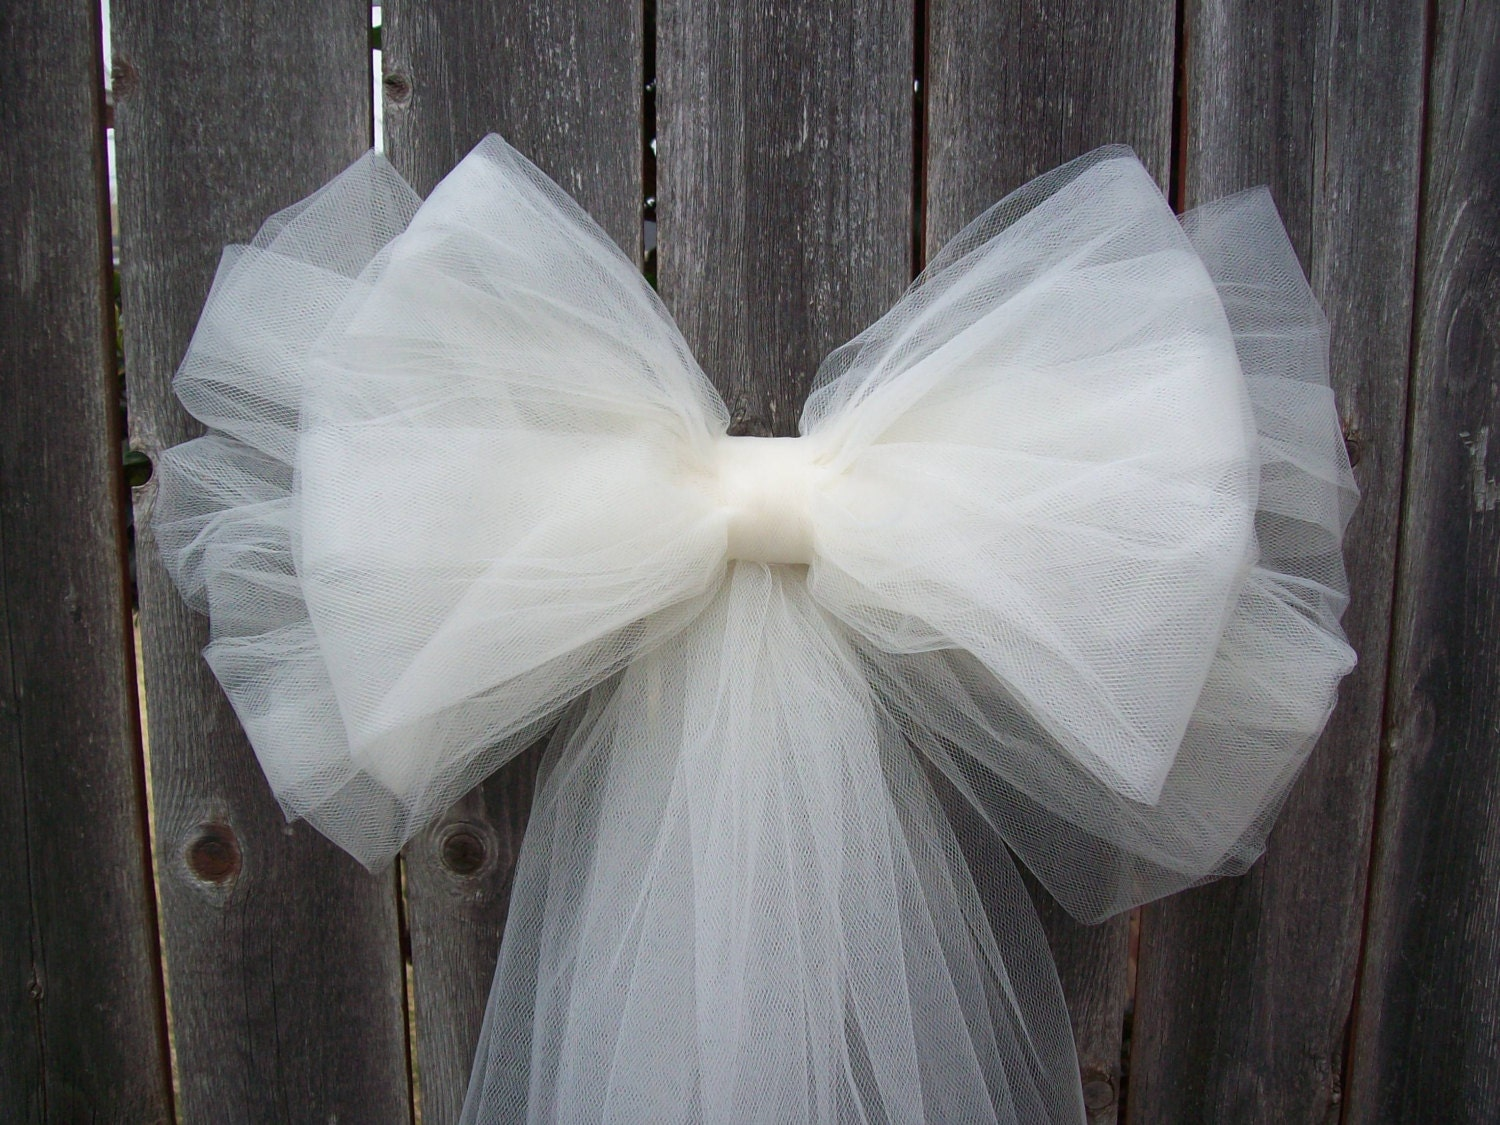 Diy Wedding Bow Decorations : Tulle pew bow over colors church decor